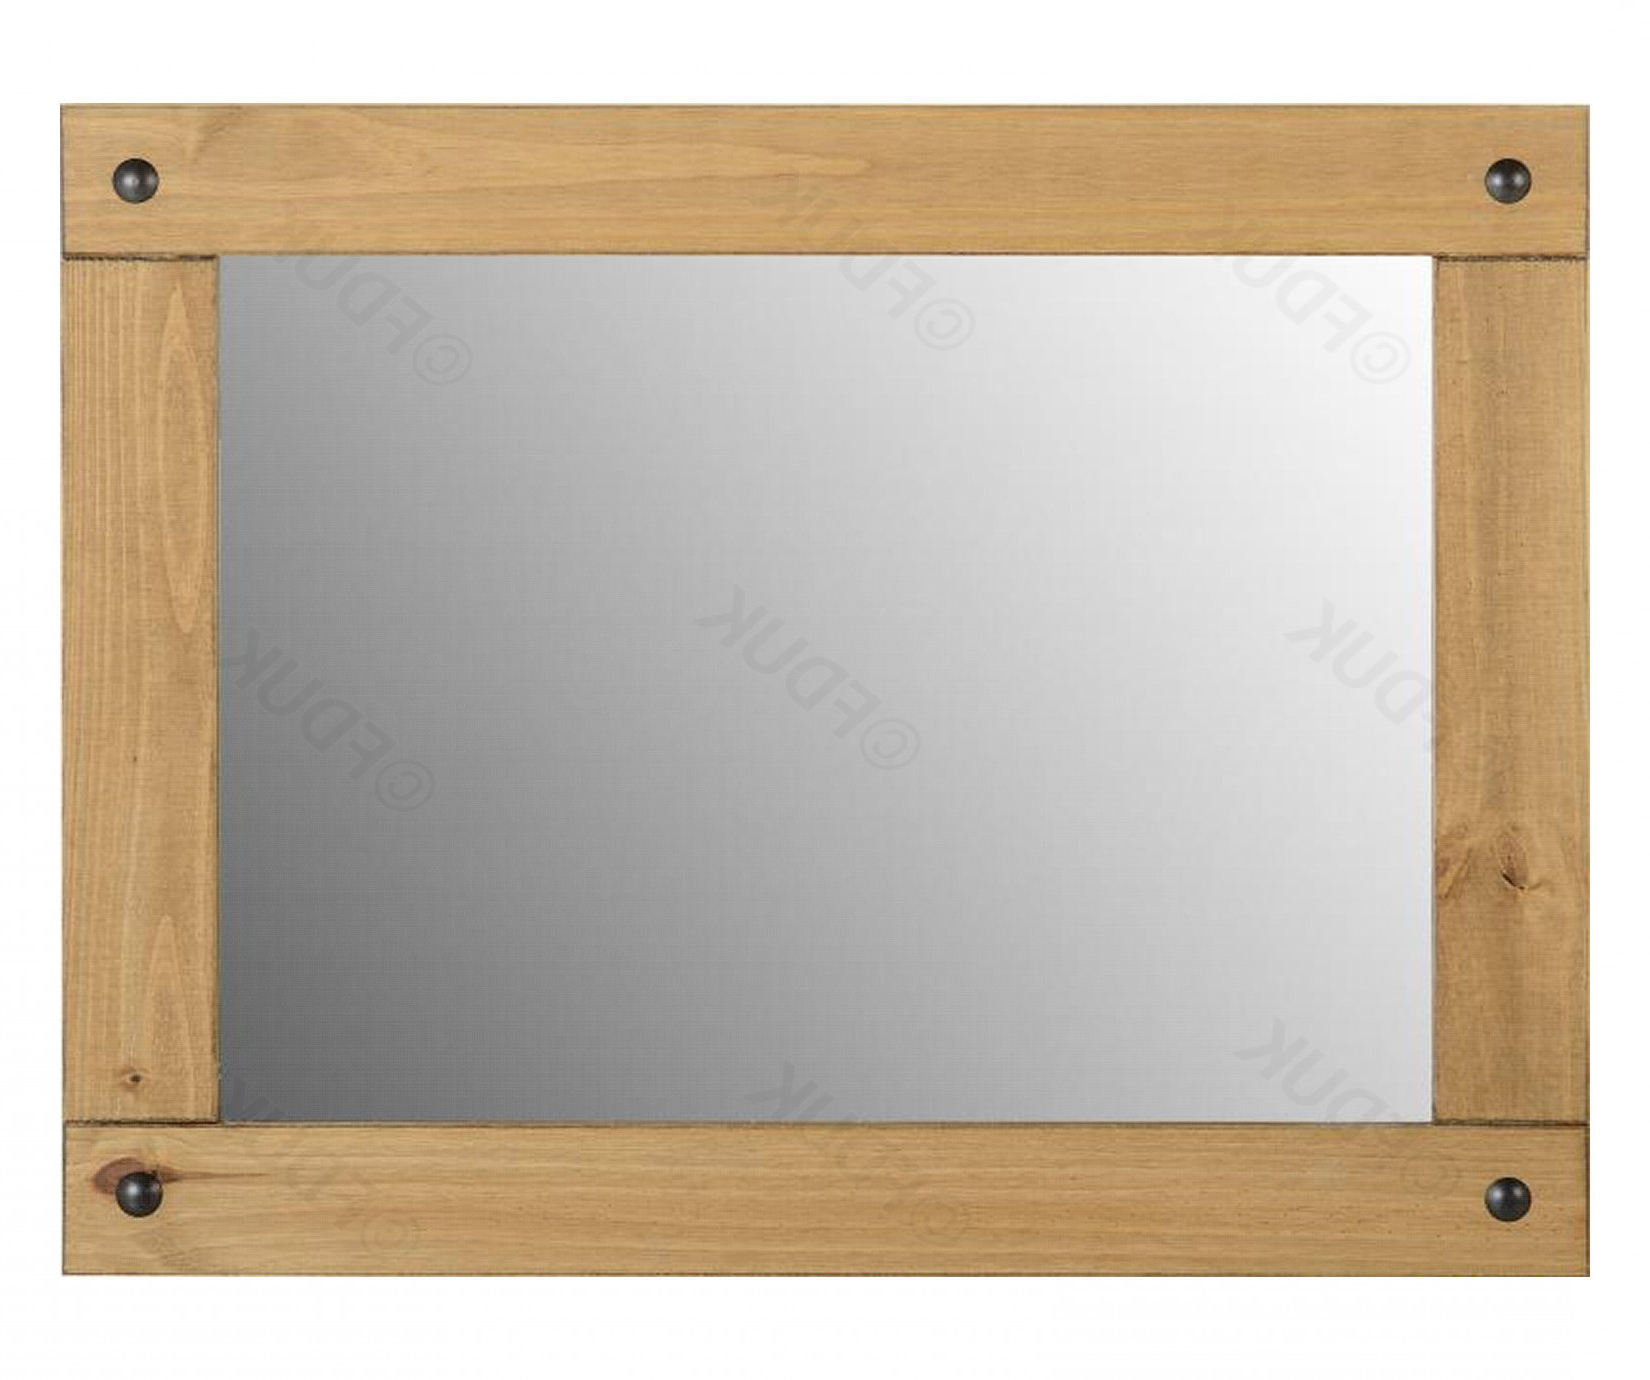 Most Recently Released Seconique Corona Pine Large Wall Mirror Fduk Best Price Guarantee We Will Beat Our Competitors Price! Give Our Sales Team A Call On 0116 235 77 86 And In Pine Wall Mirrors (View 2 of 20)